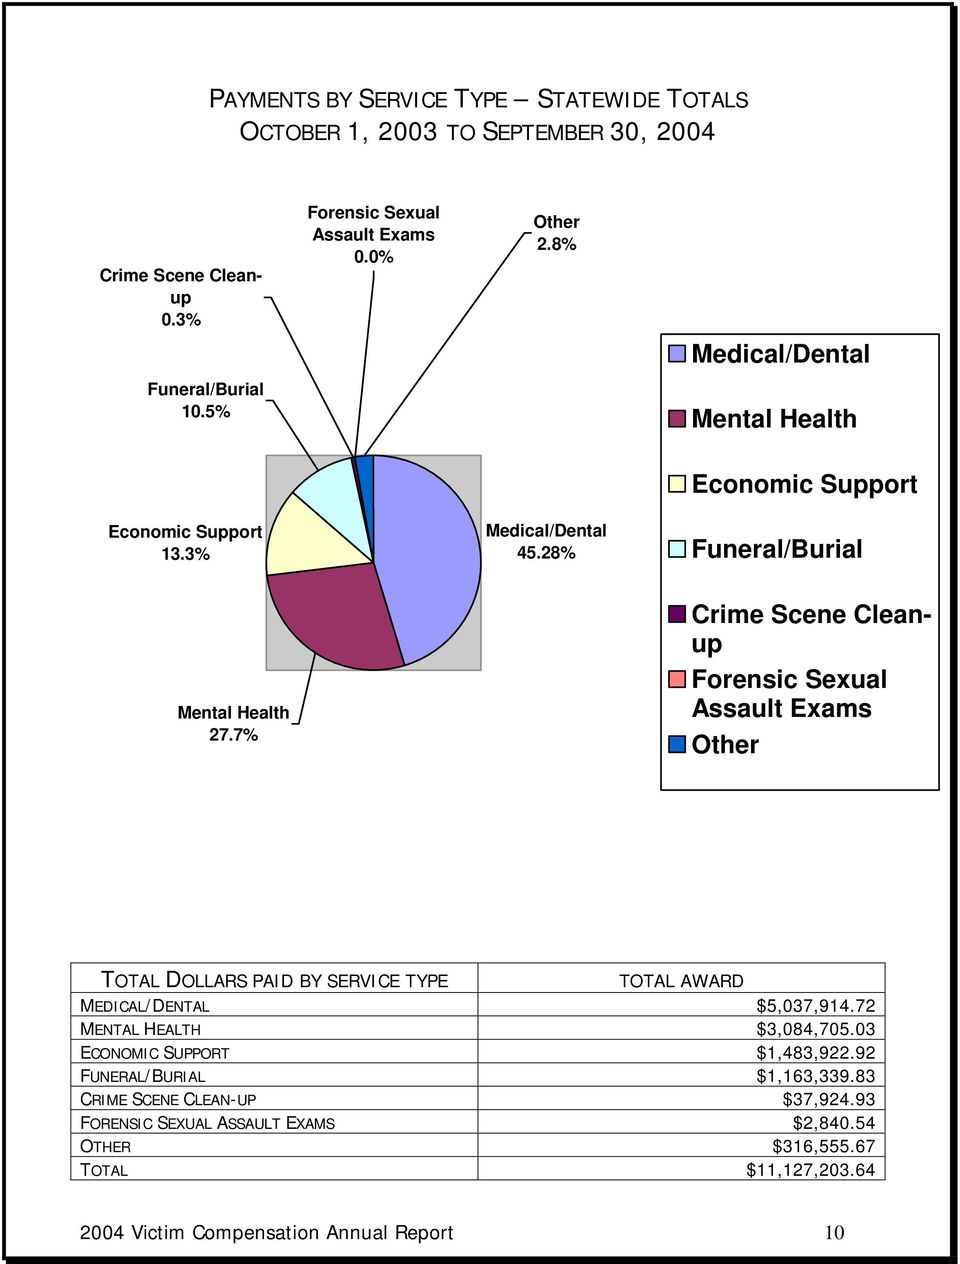 7% Crime Scene Cleanup Forensic Sexual Assault Exams Other TOTAL DOLLARS PAID BY SERVICE TYPE TOTAL AWARD MEDICAL/DENTAL $5,037,914.72 MENTAL HEALTH $3,084,705.